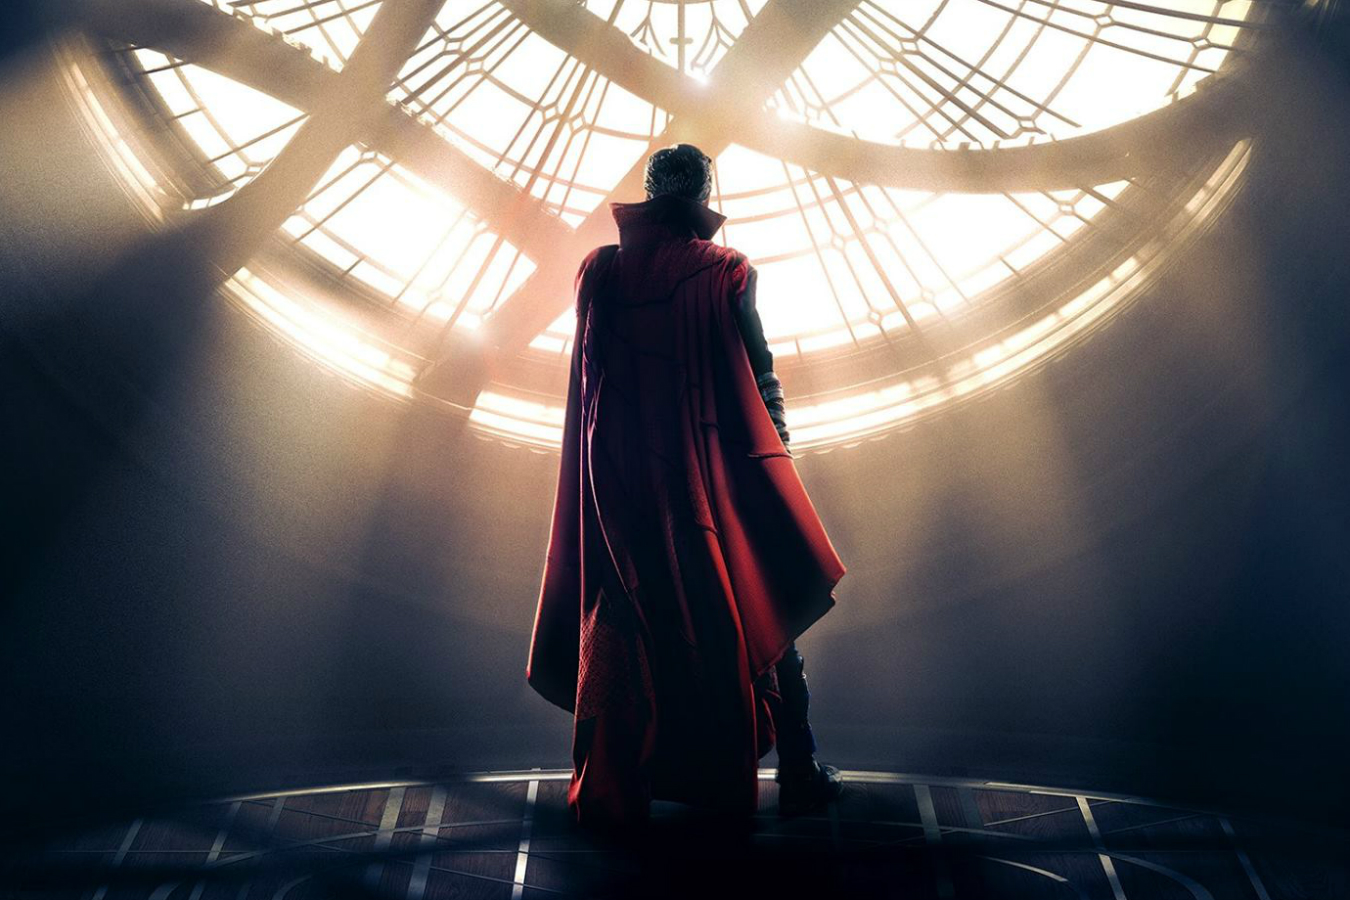 http://www.digitaltrends.com/movies/doctor-strange-movie-news/